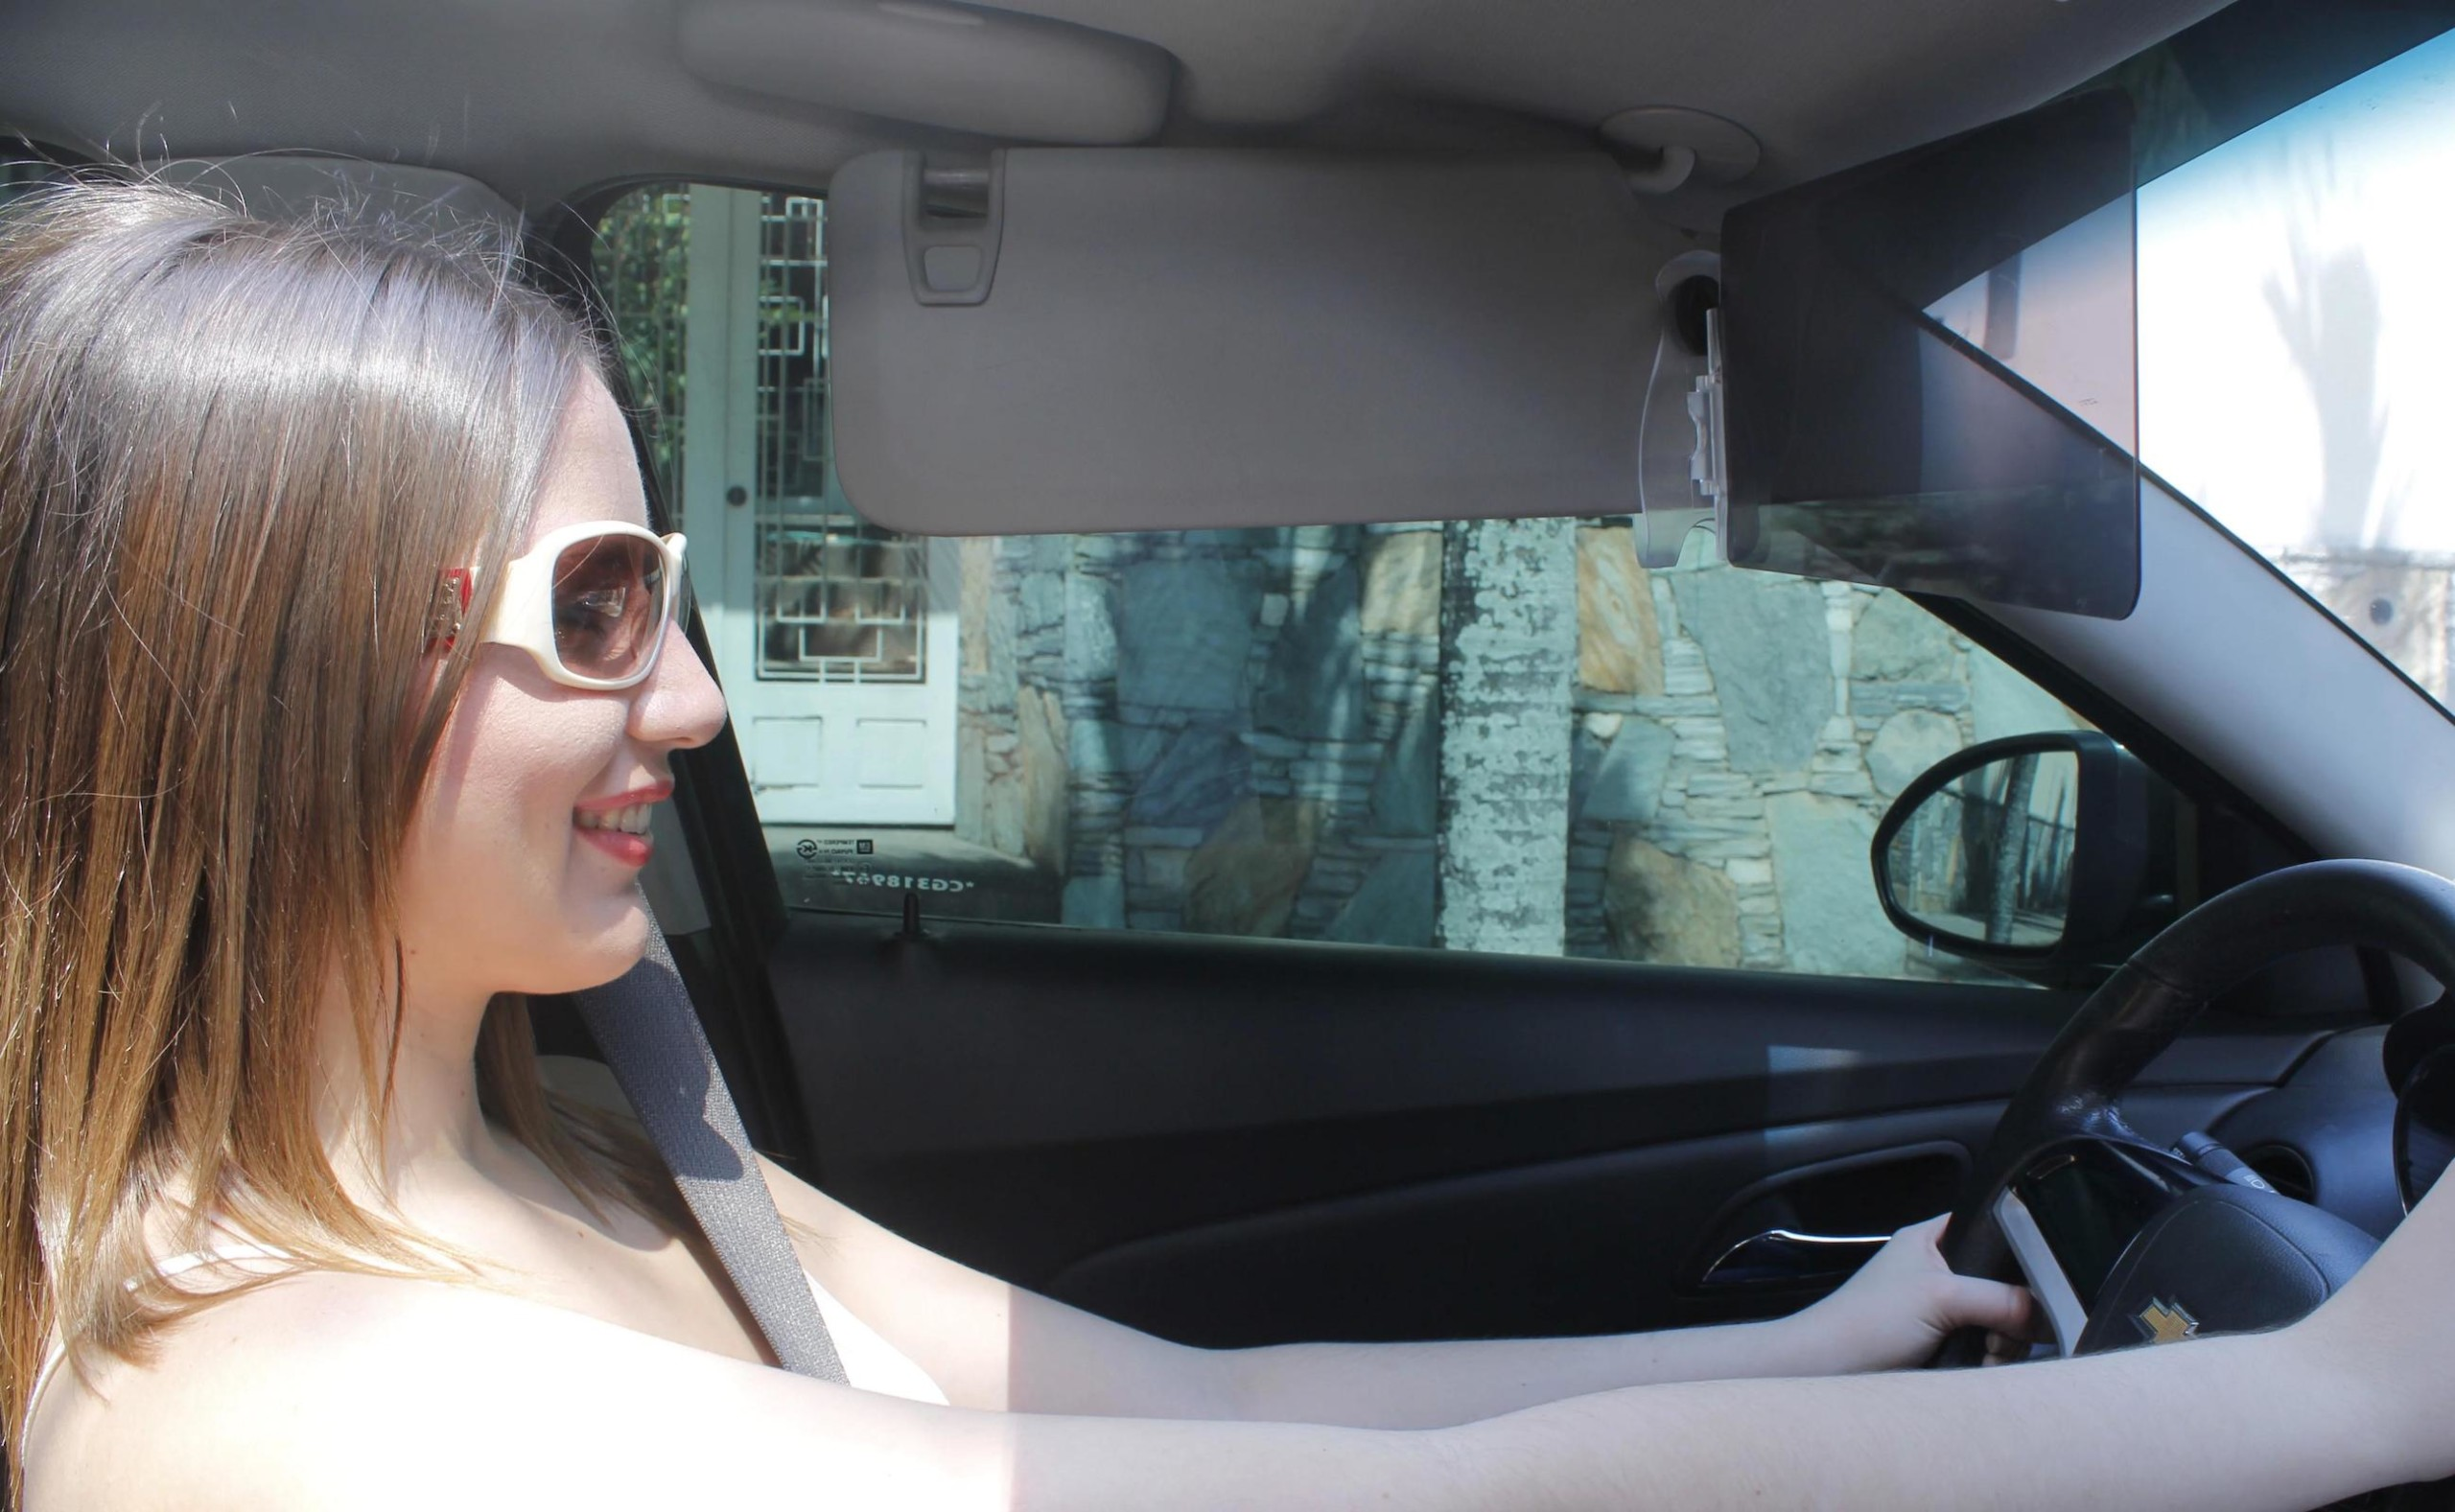 VisorTwin Glare-Blocking Car Visor blocks the sun without blocking your view